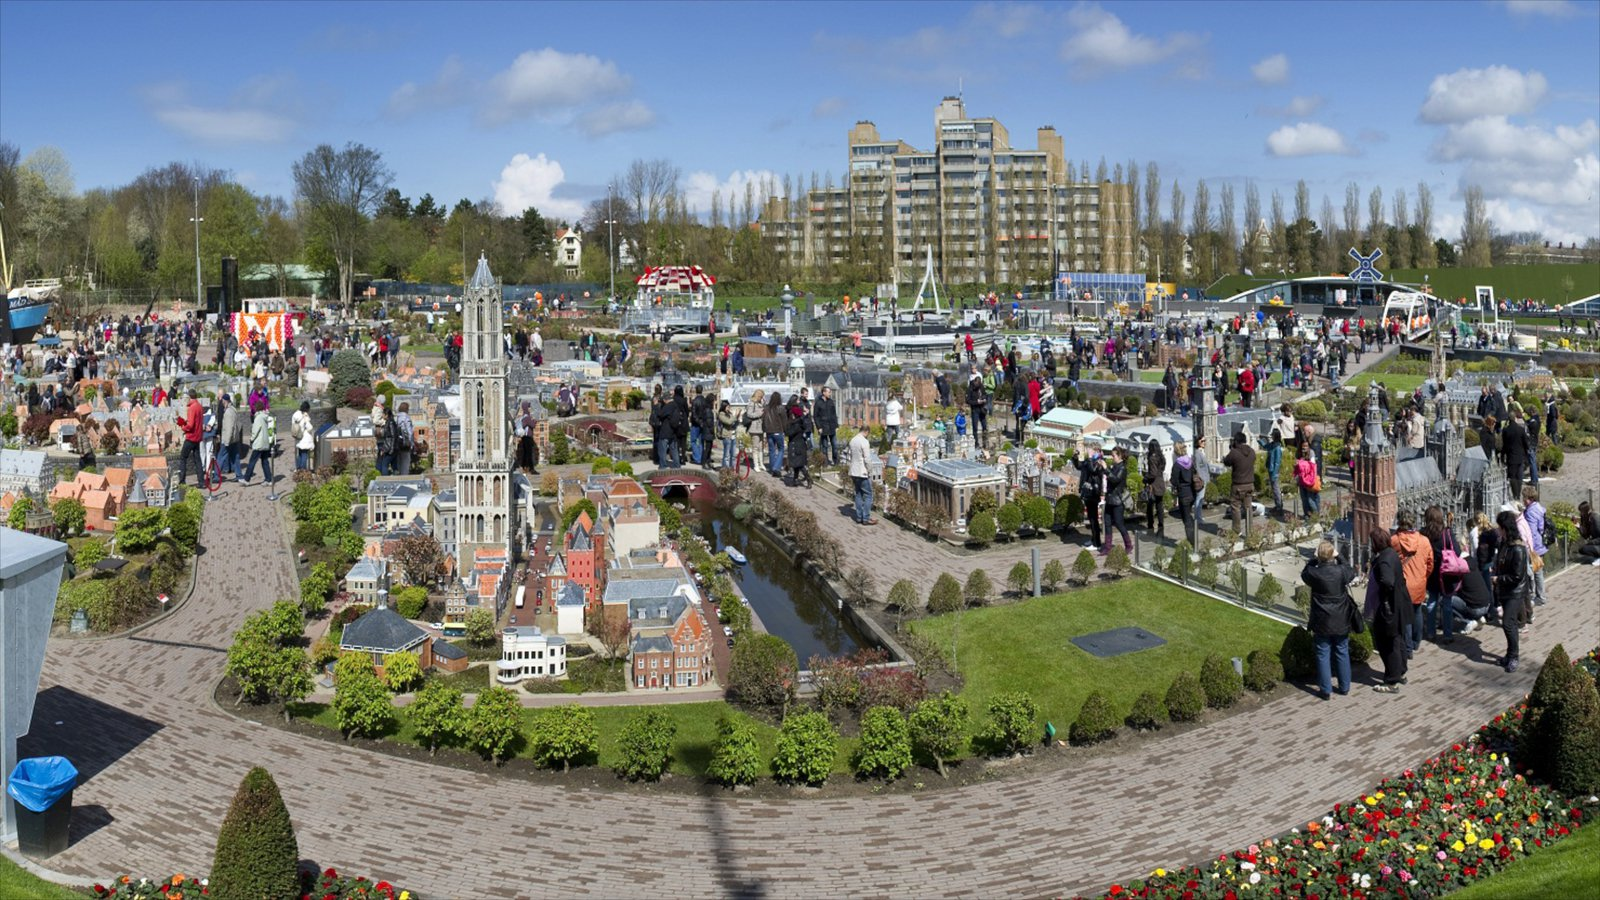 Madurodam The Hague, Attraction Pictures: View Images of Madurodam